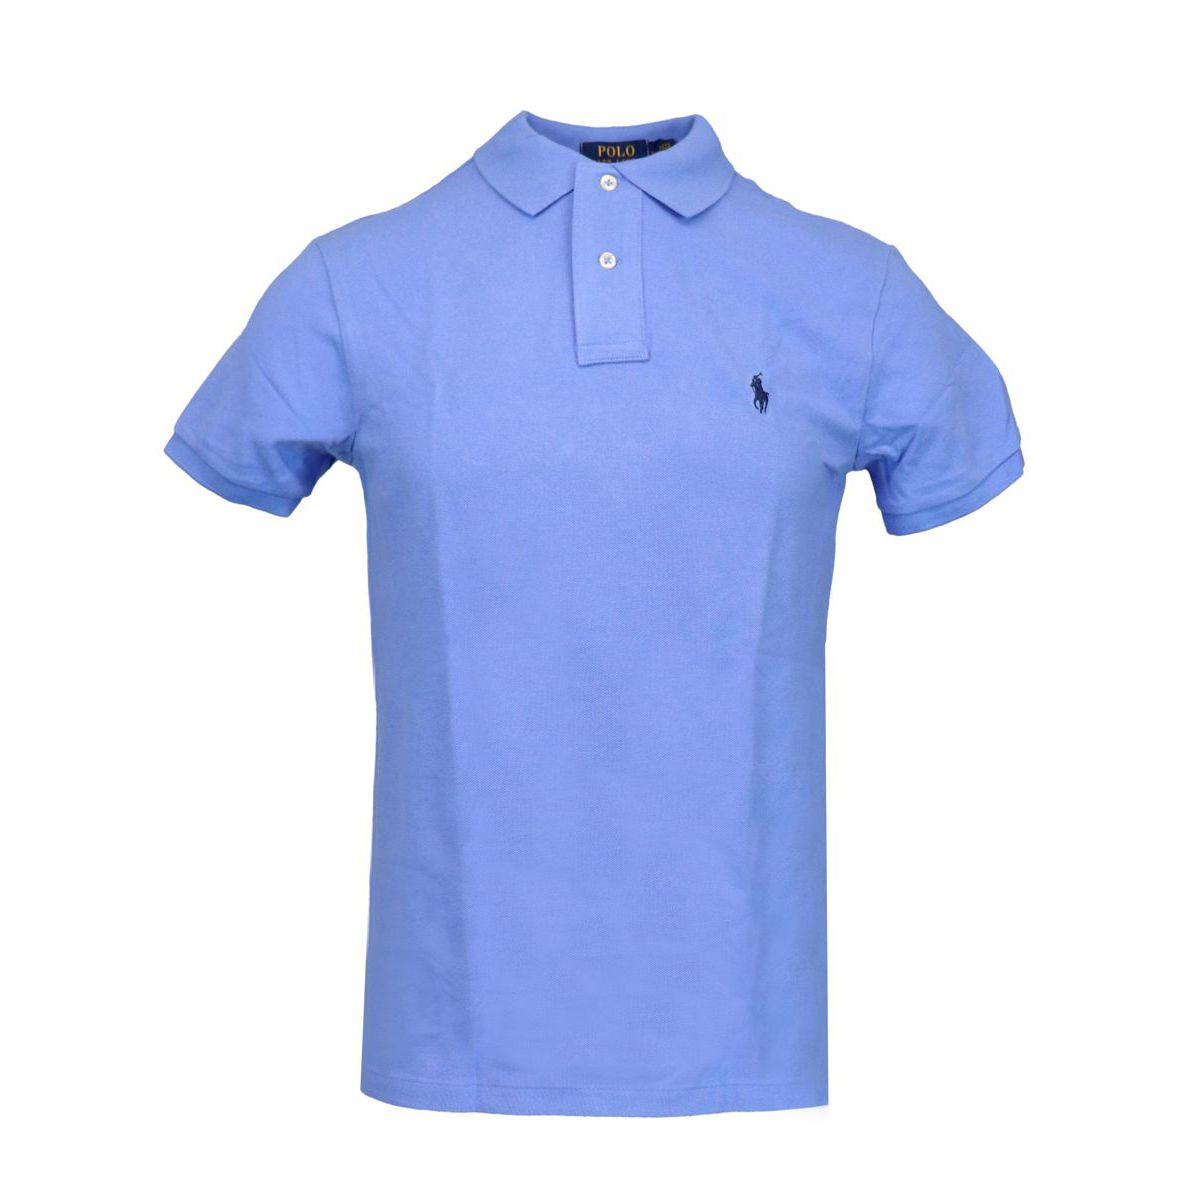 Slim-fit polo shirt In cotton piqué with logo Iris Polo Ralph Lauren